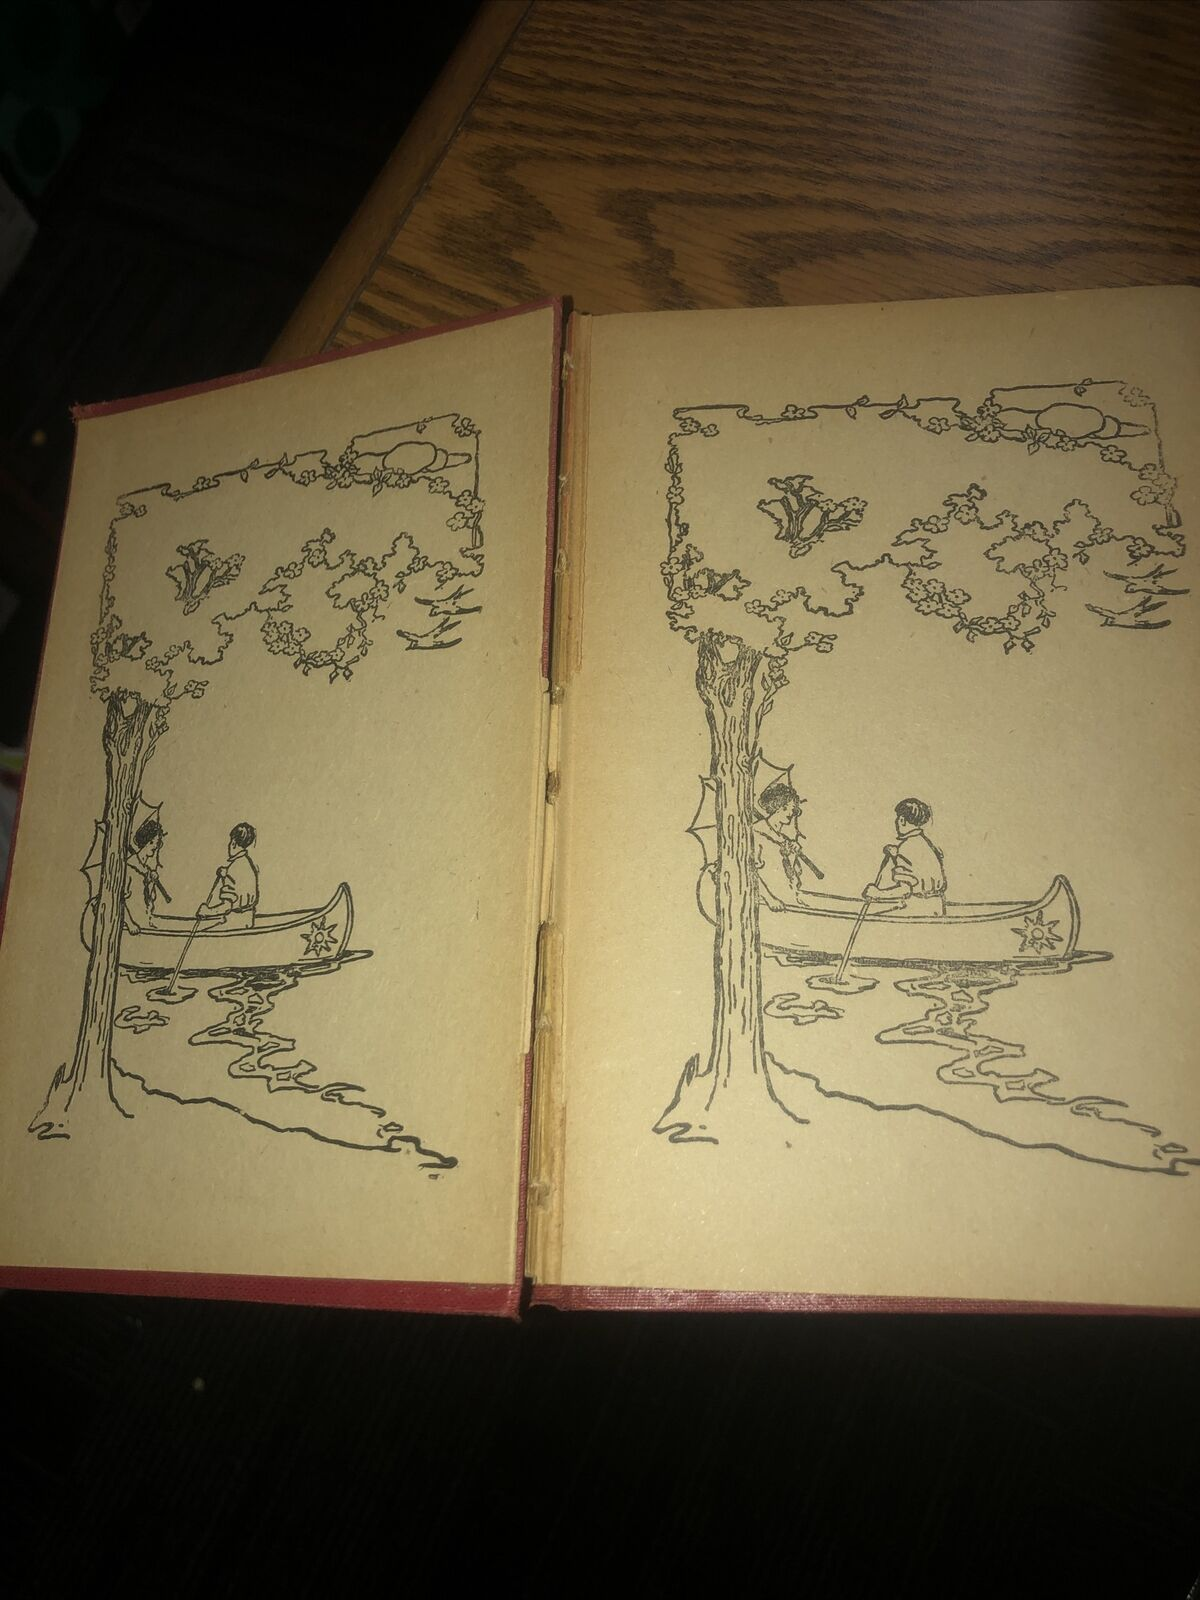 c.1890 She's All The World To Me by Hall Caine Hardcover |